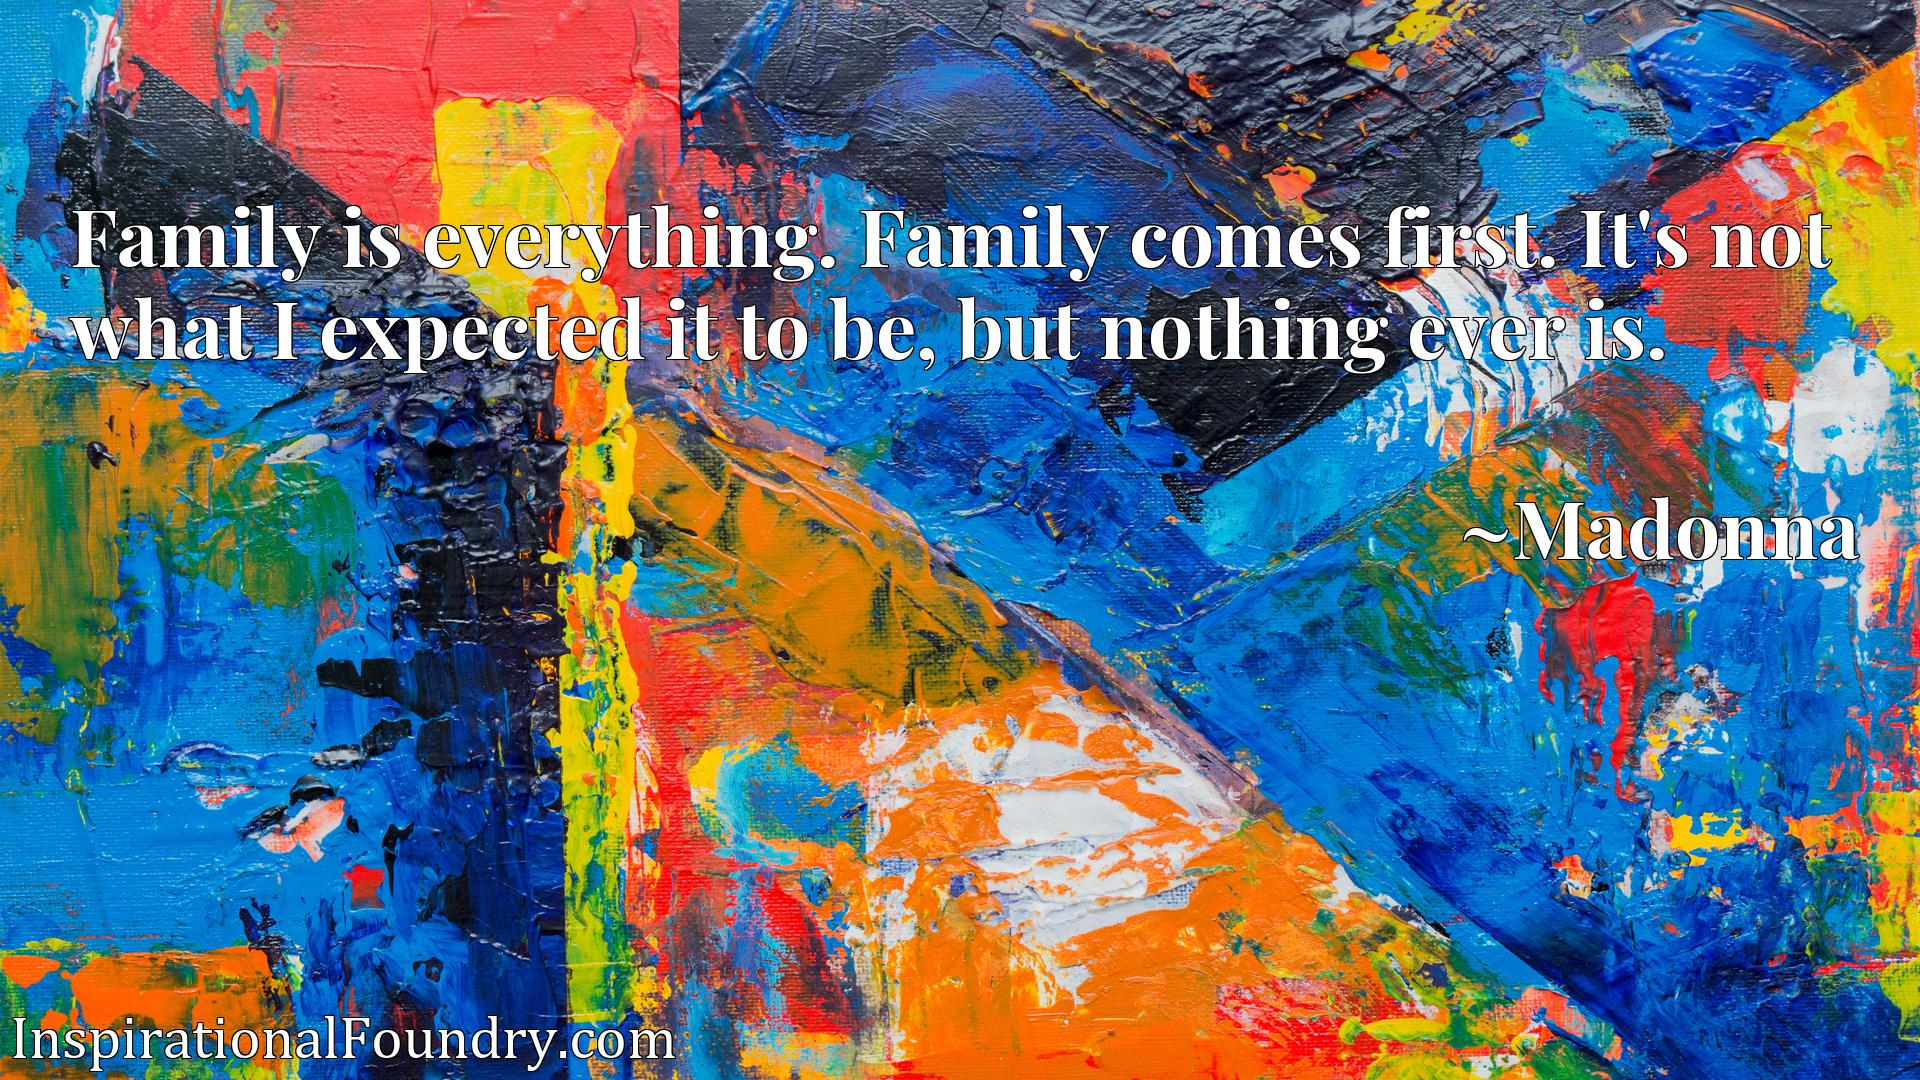 Family is everything. Family comes first. It's not what I expected it to be, but nothing ever is.